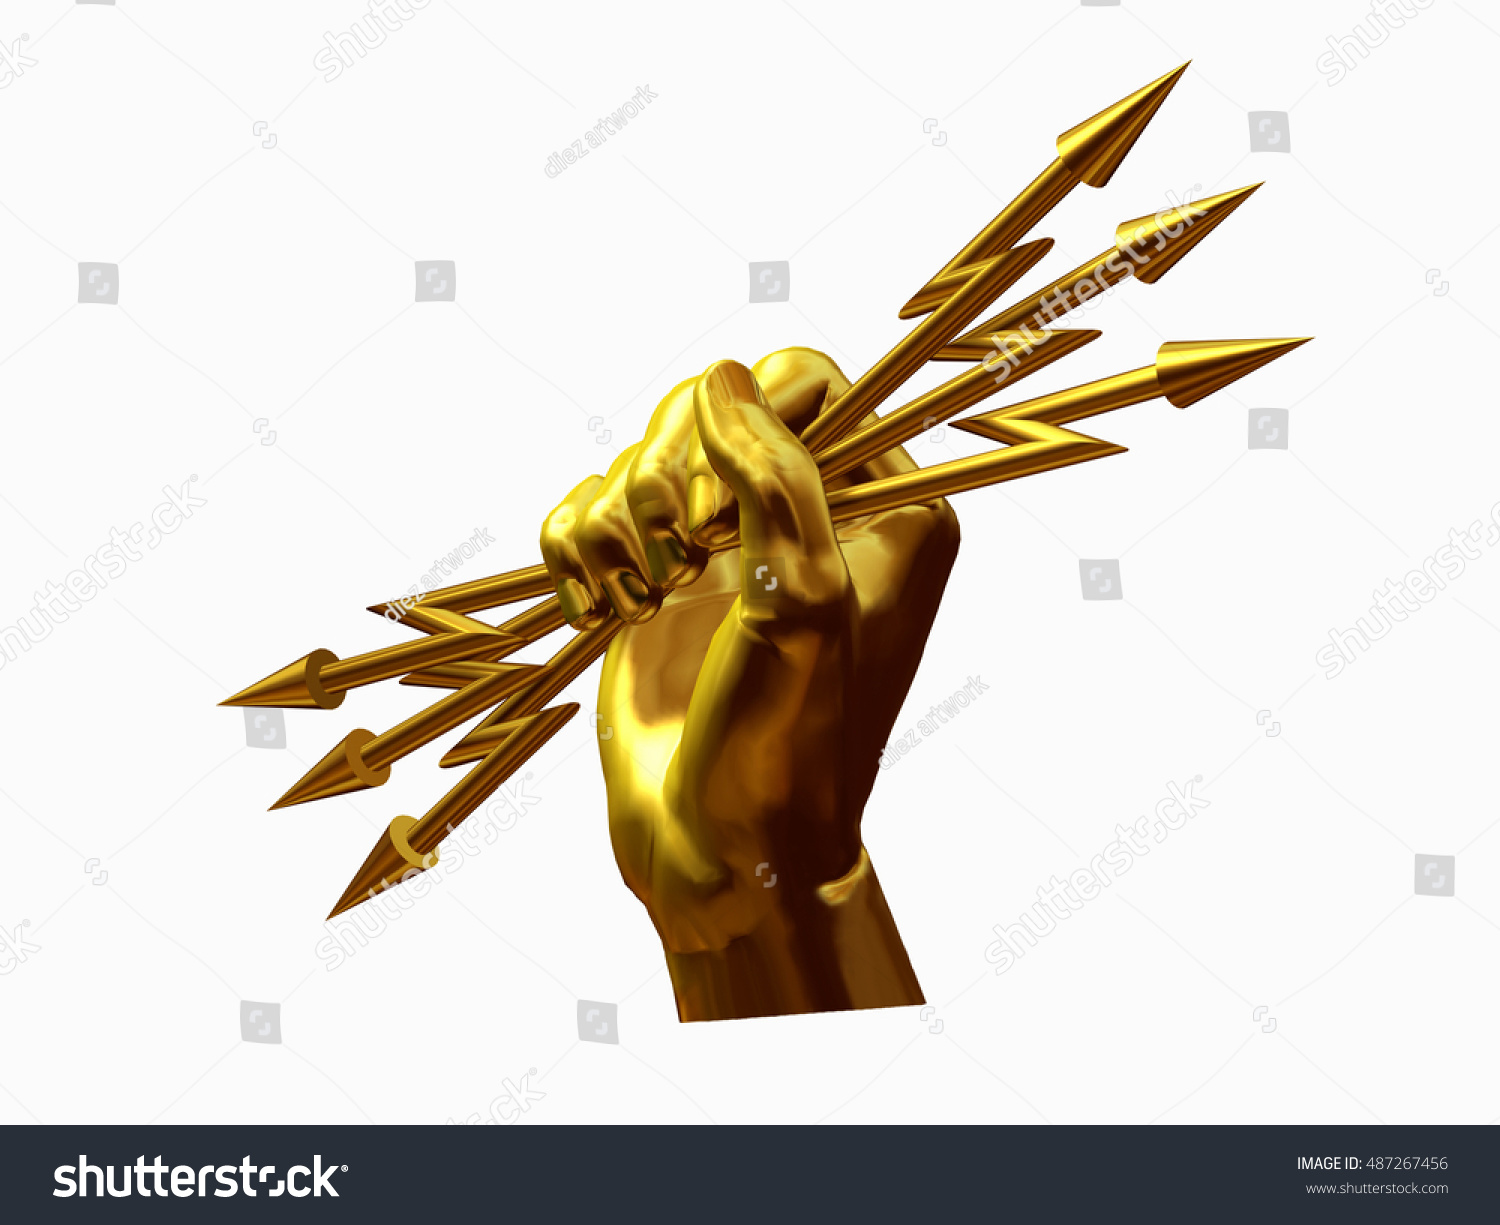 Zeus hand holding bundle lightning gold stock illustration zeus hand holding a bundle of lightning in gold 3d illustration biocorpaavc Images